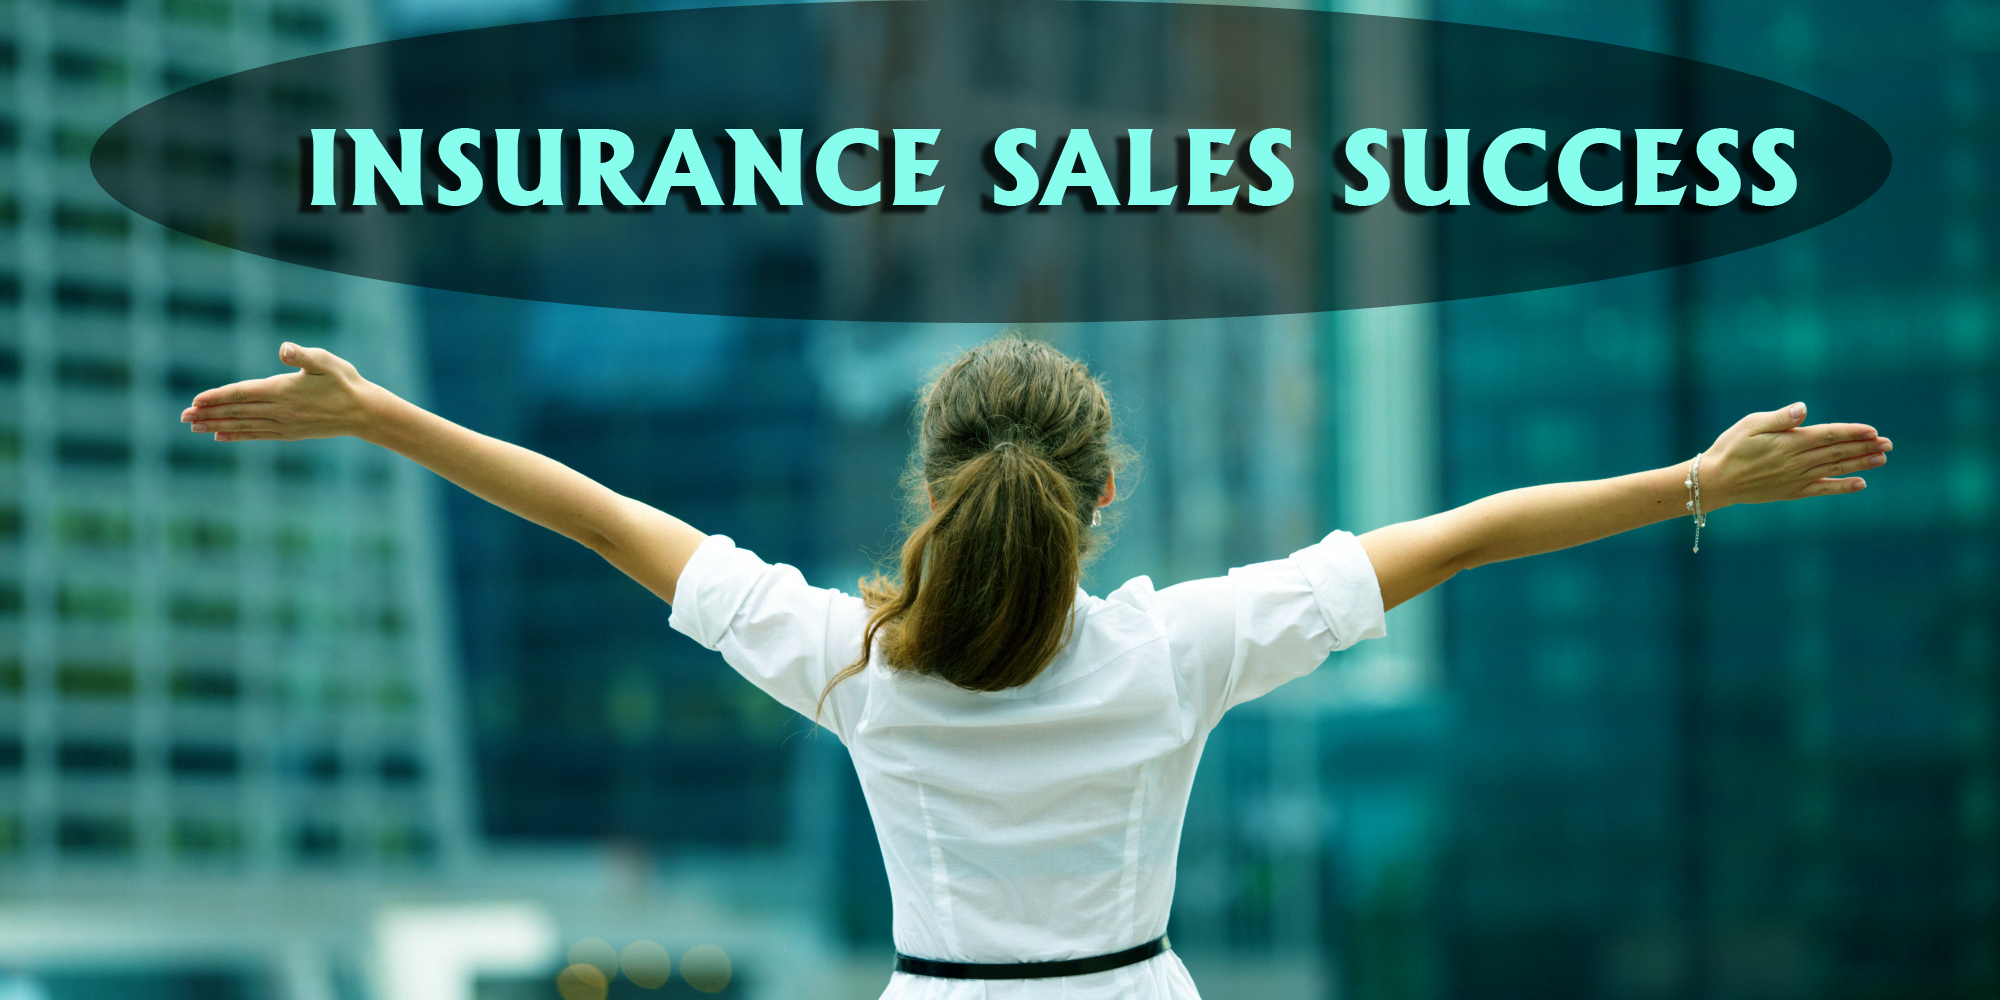 Motivational quotes to ignite your insurance sales | My Discover